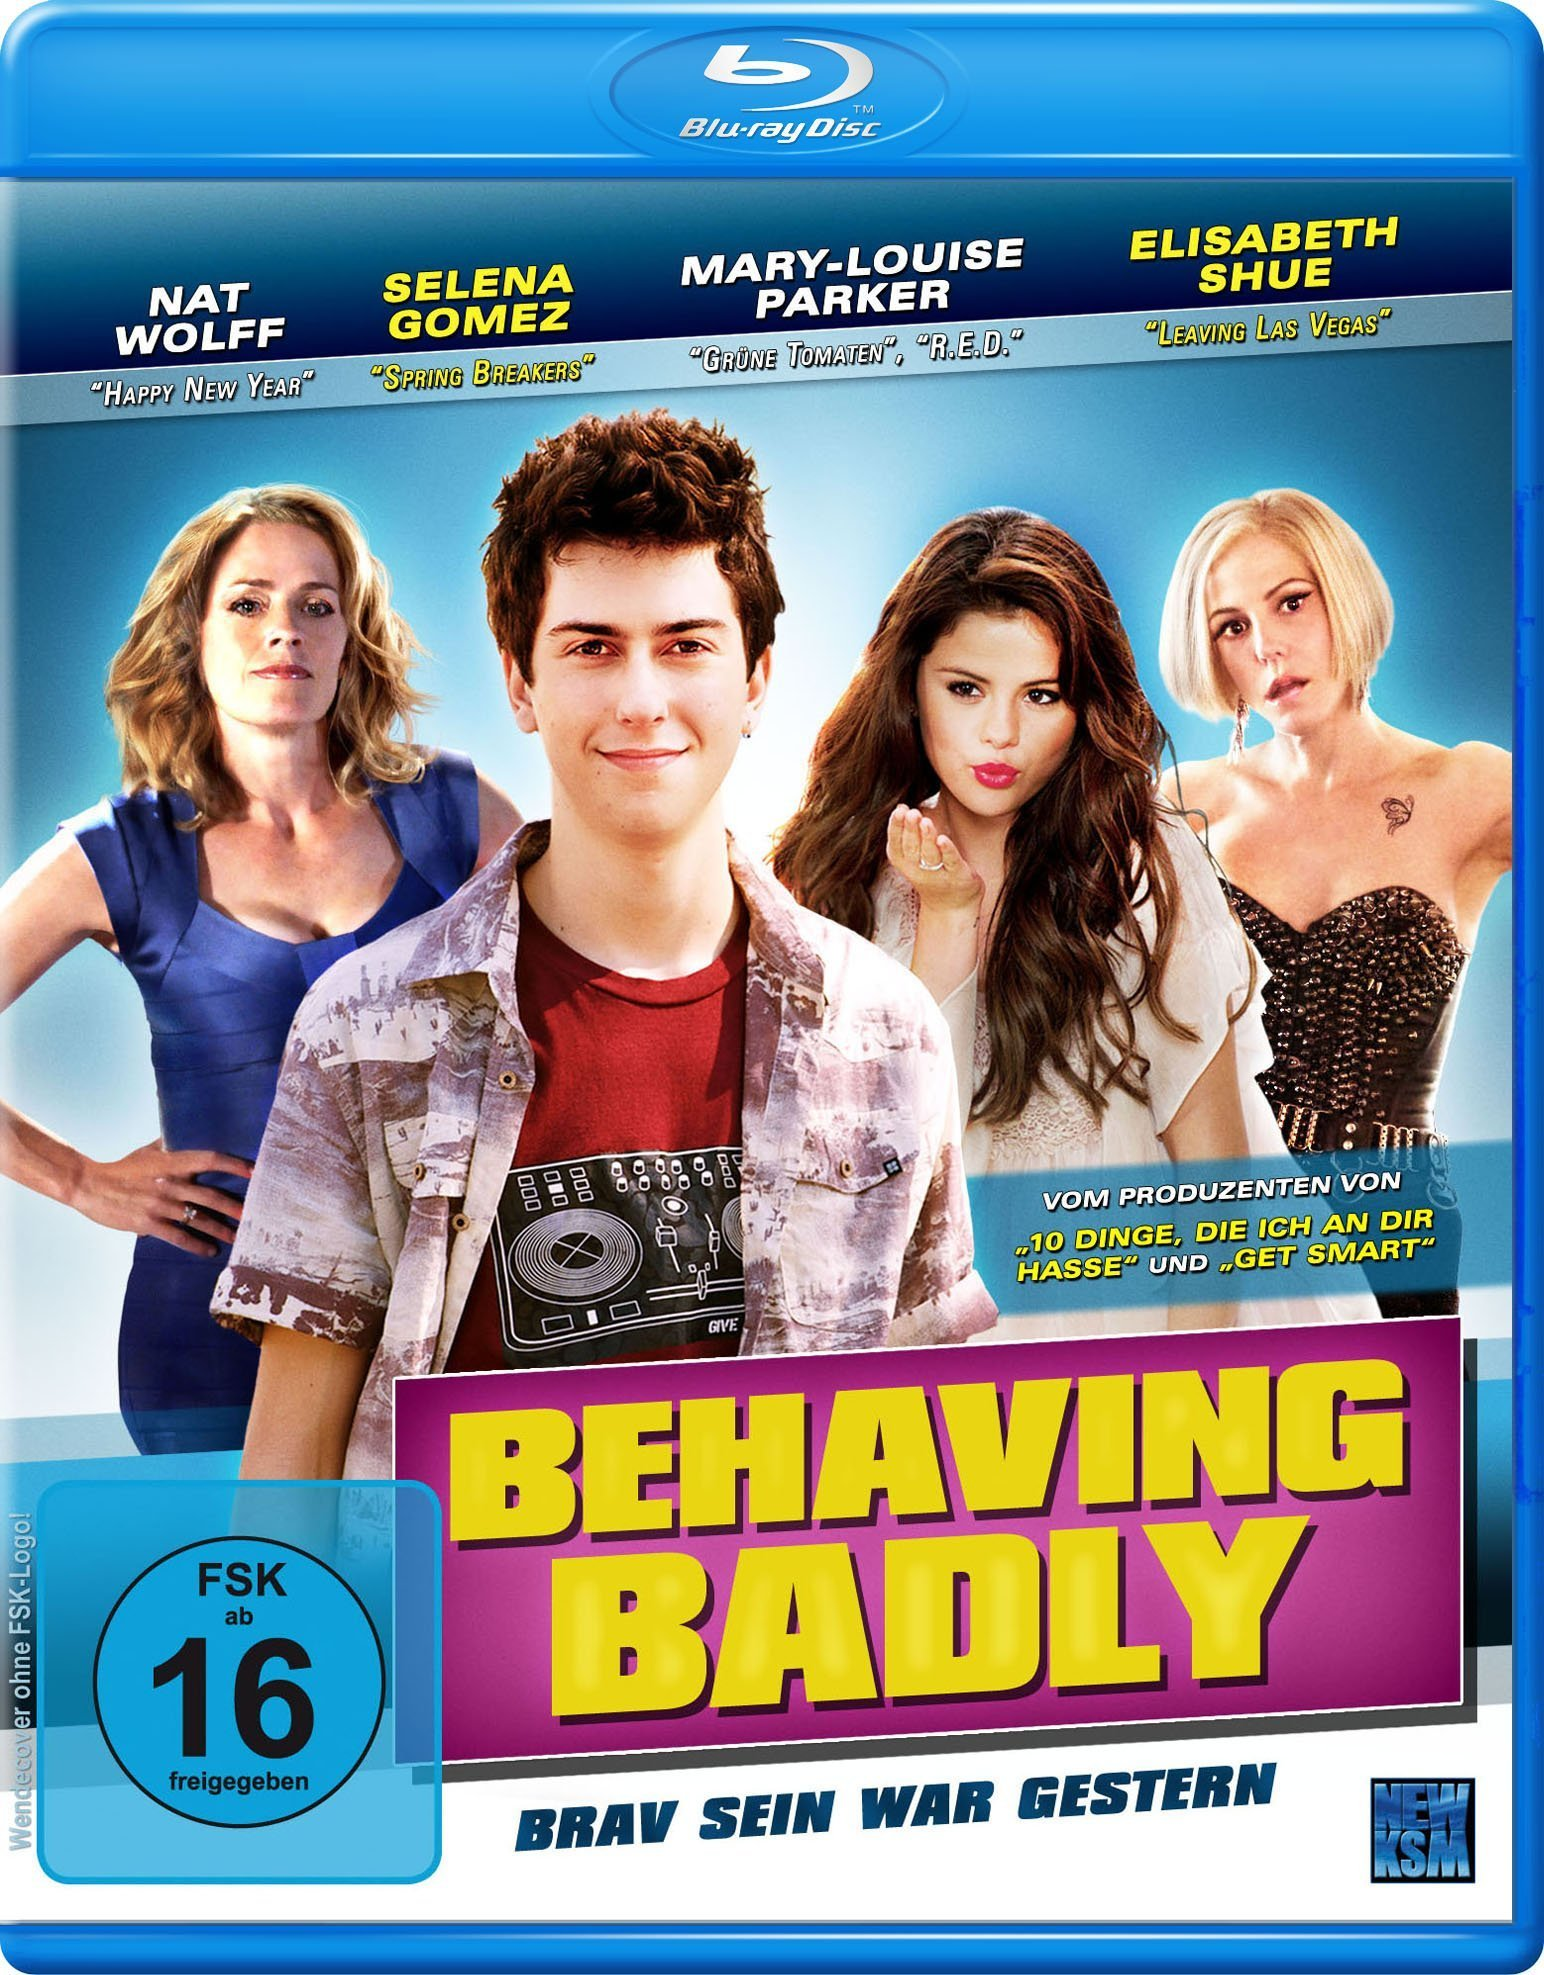 Badly behaving photo new photo